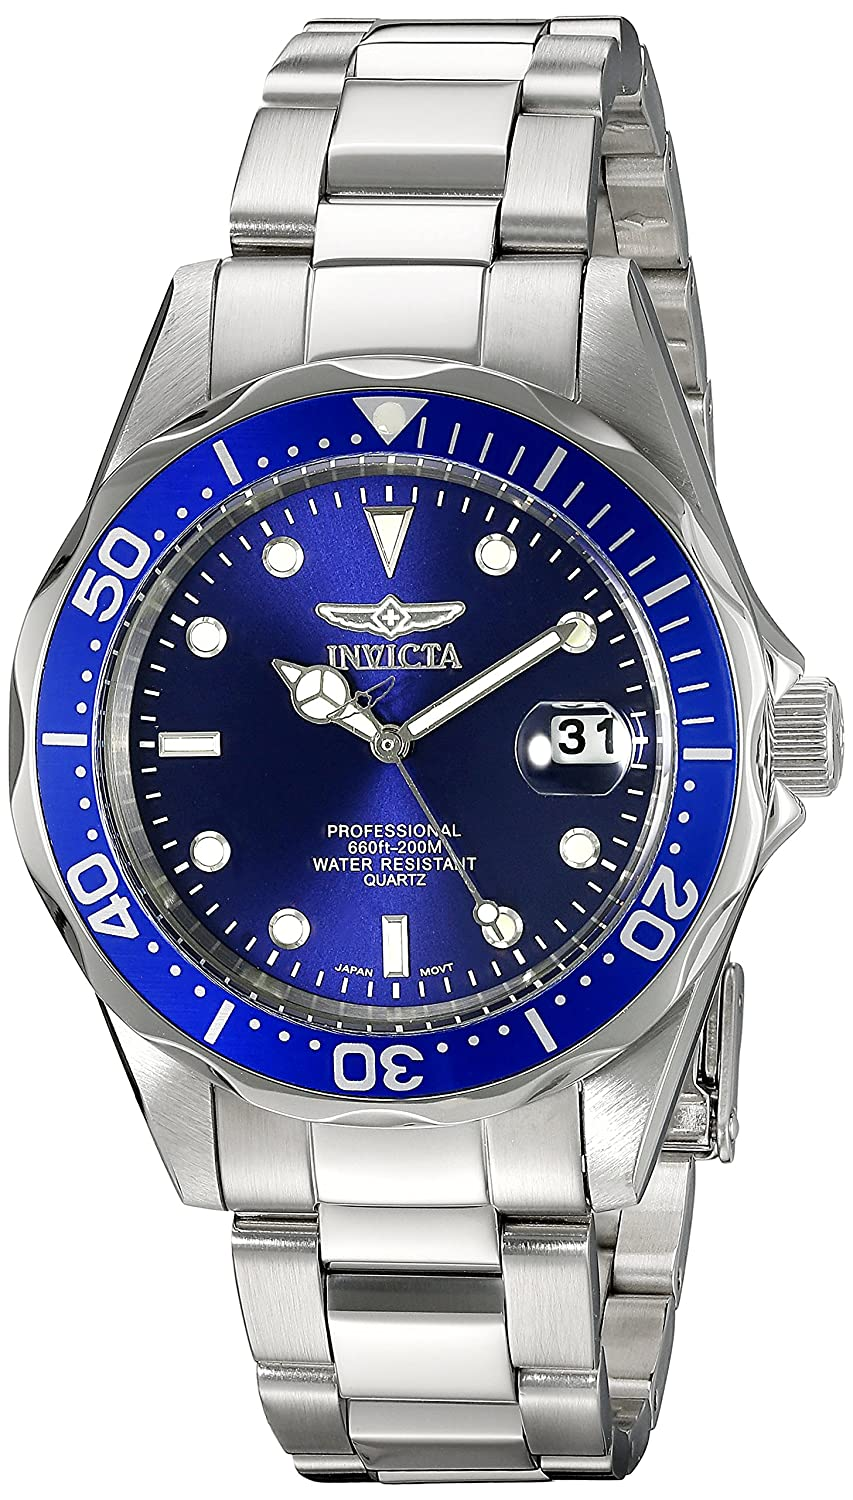 Invicta Men's 9204 Syb Pro Diver Analog Display Quartz Silver Watch by Invicta